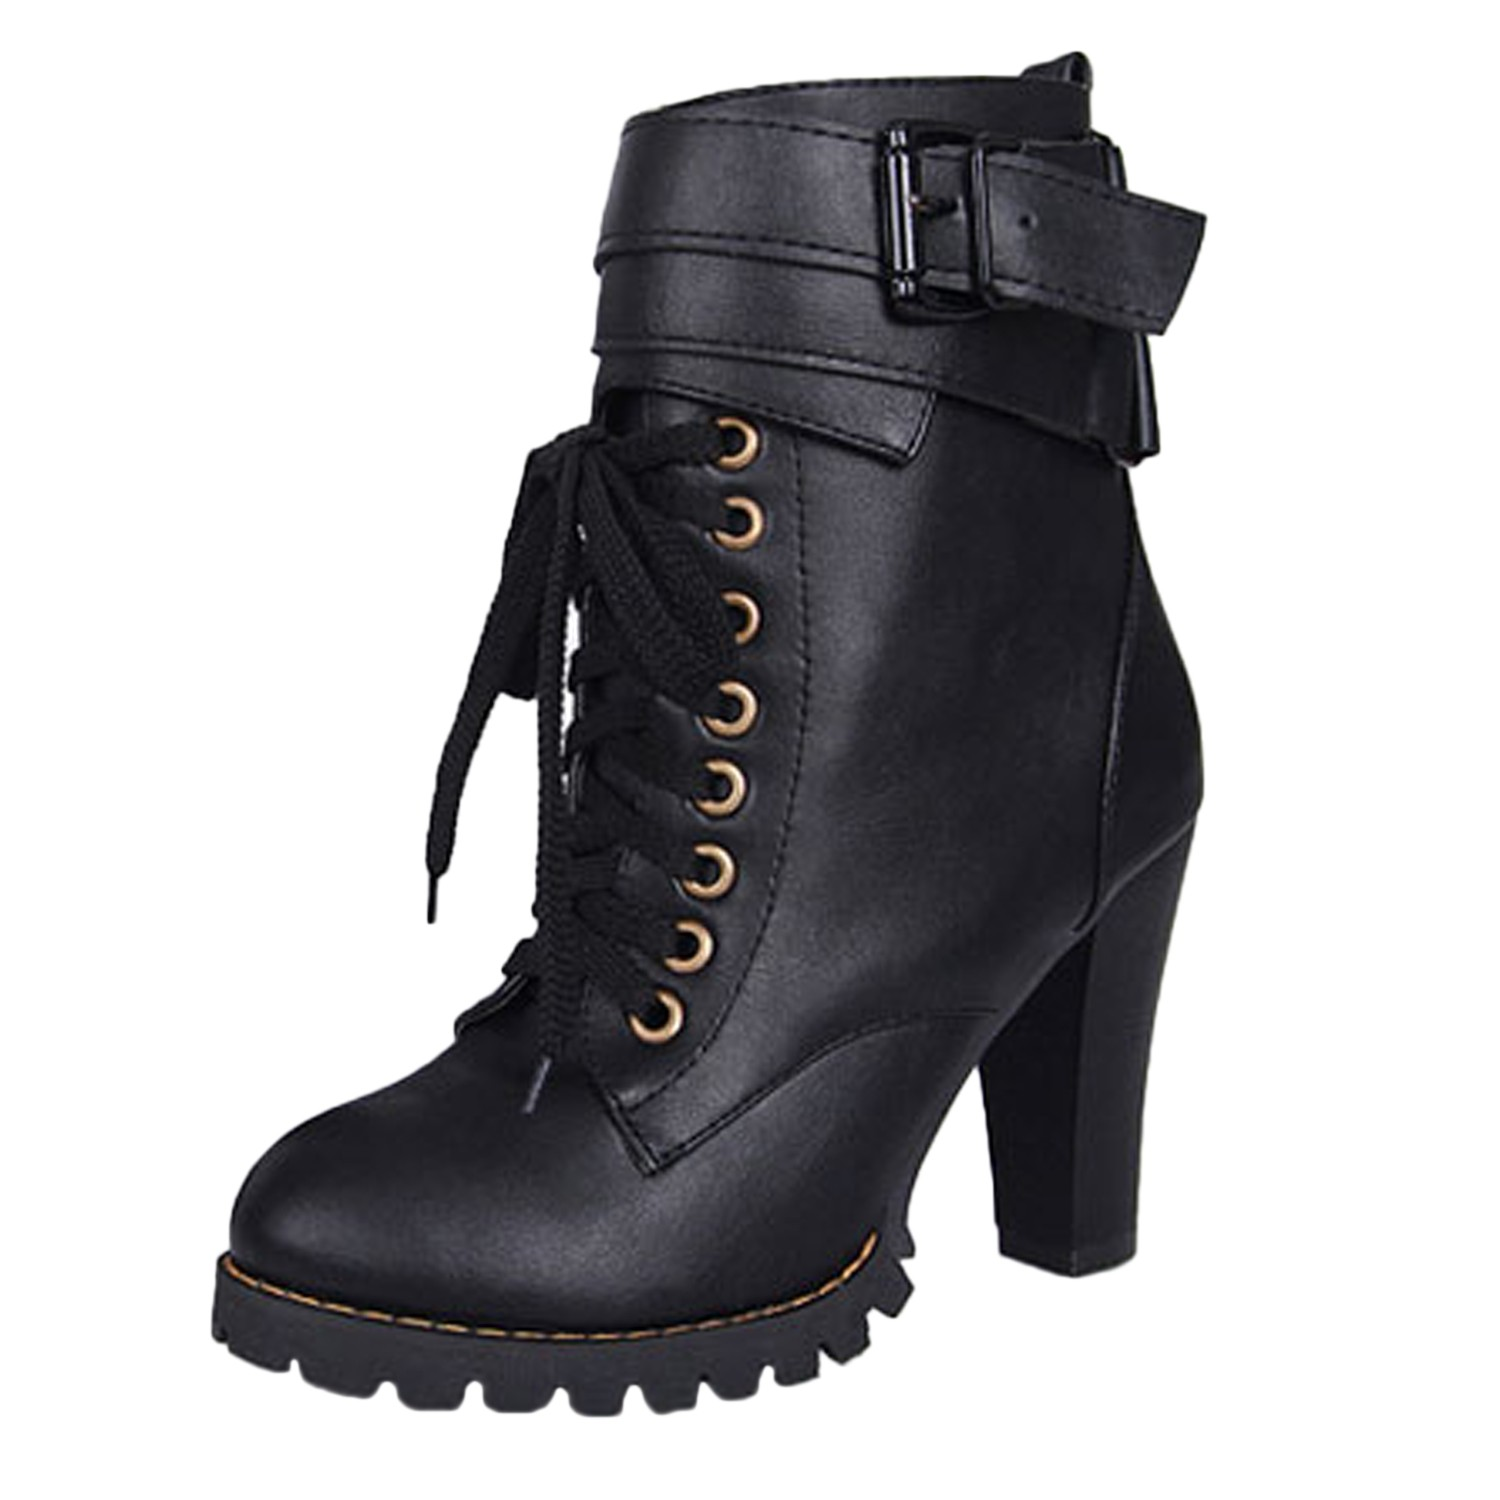 womens ankle boots high heel shoes boots winter army. Black Bedroom Furniture Sets. Home Design Ideas